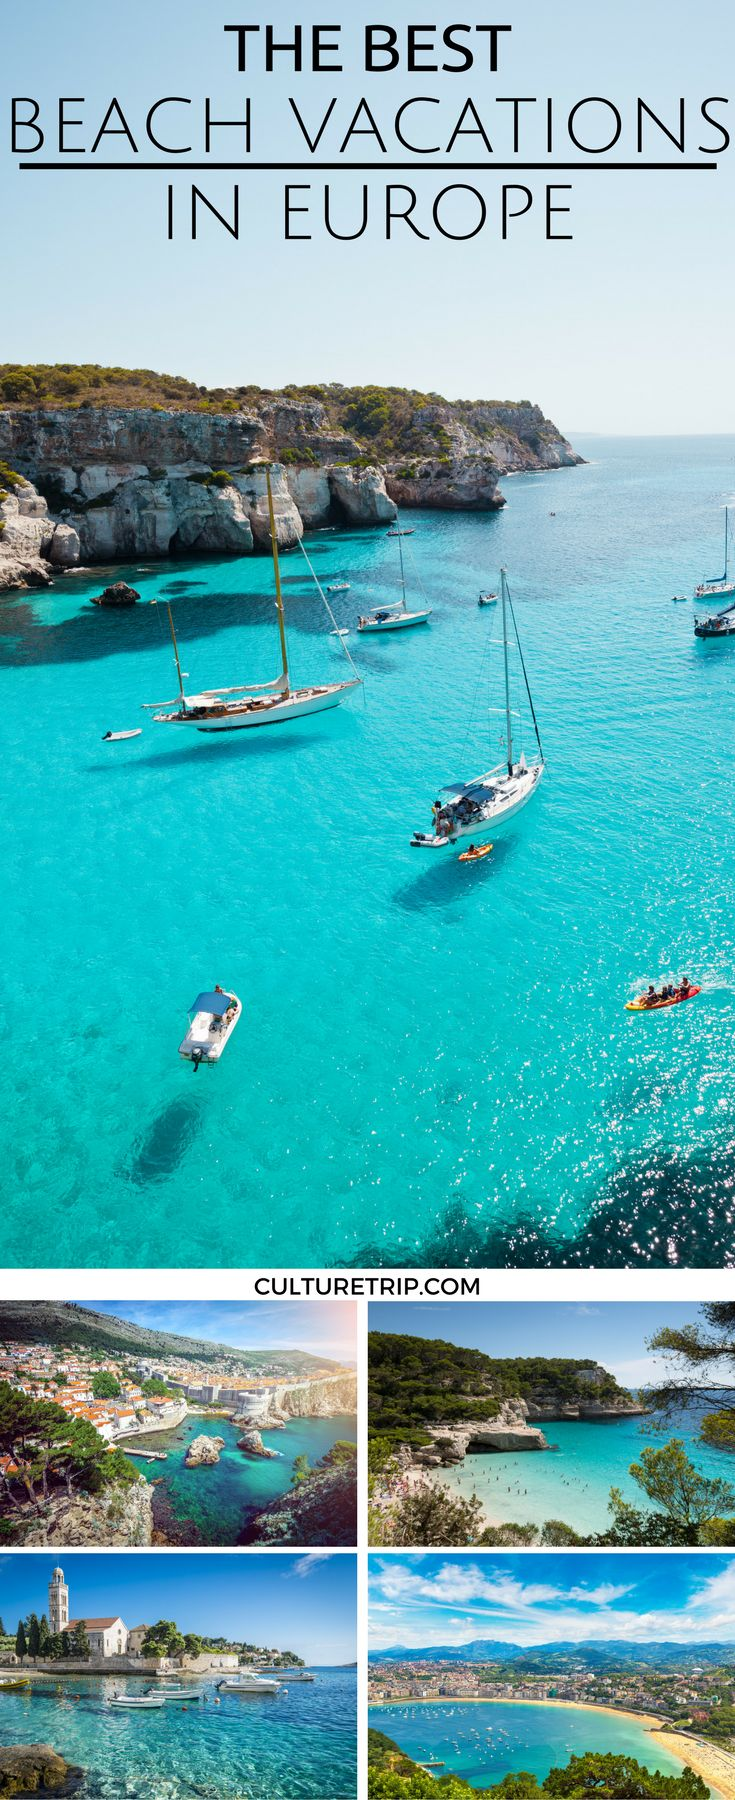 The Best Beach Vacations in Europe|Pinterest: @theculturetrip